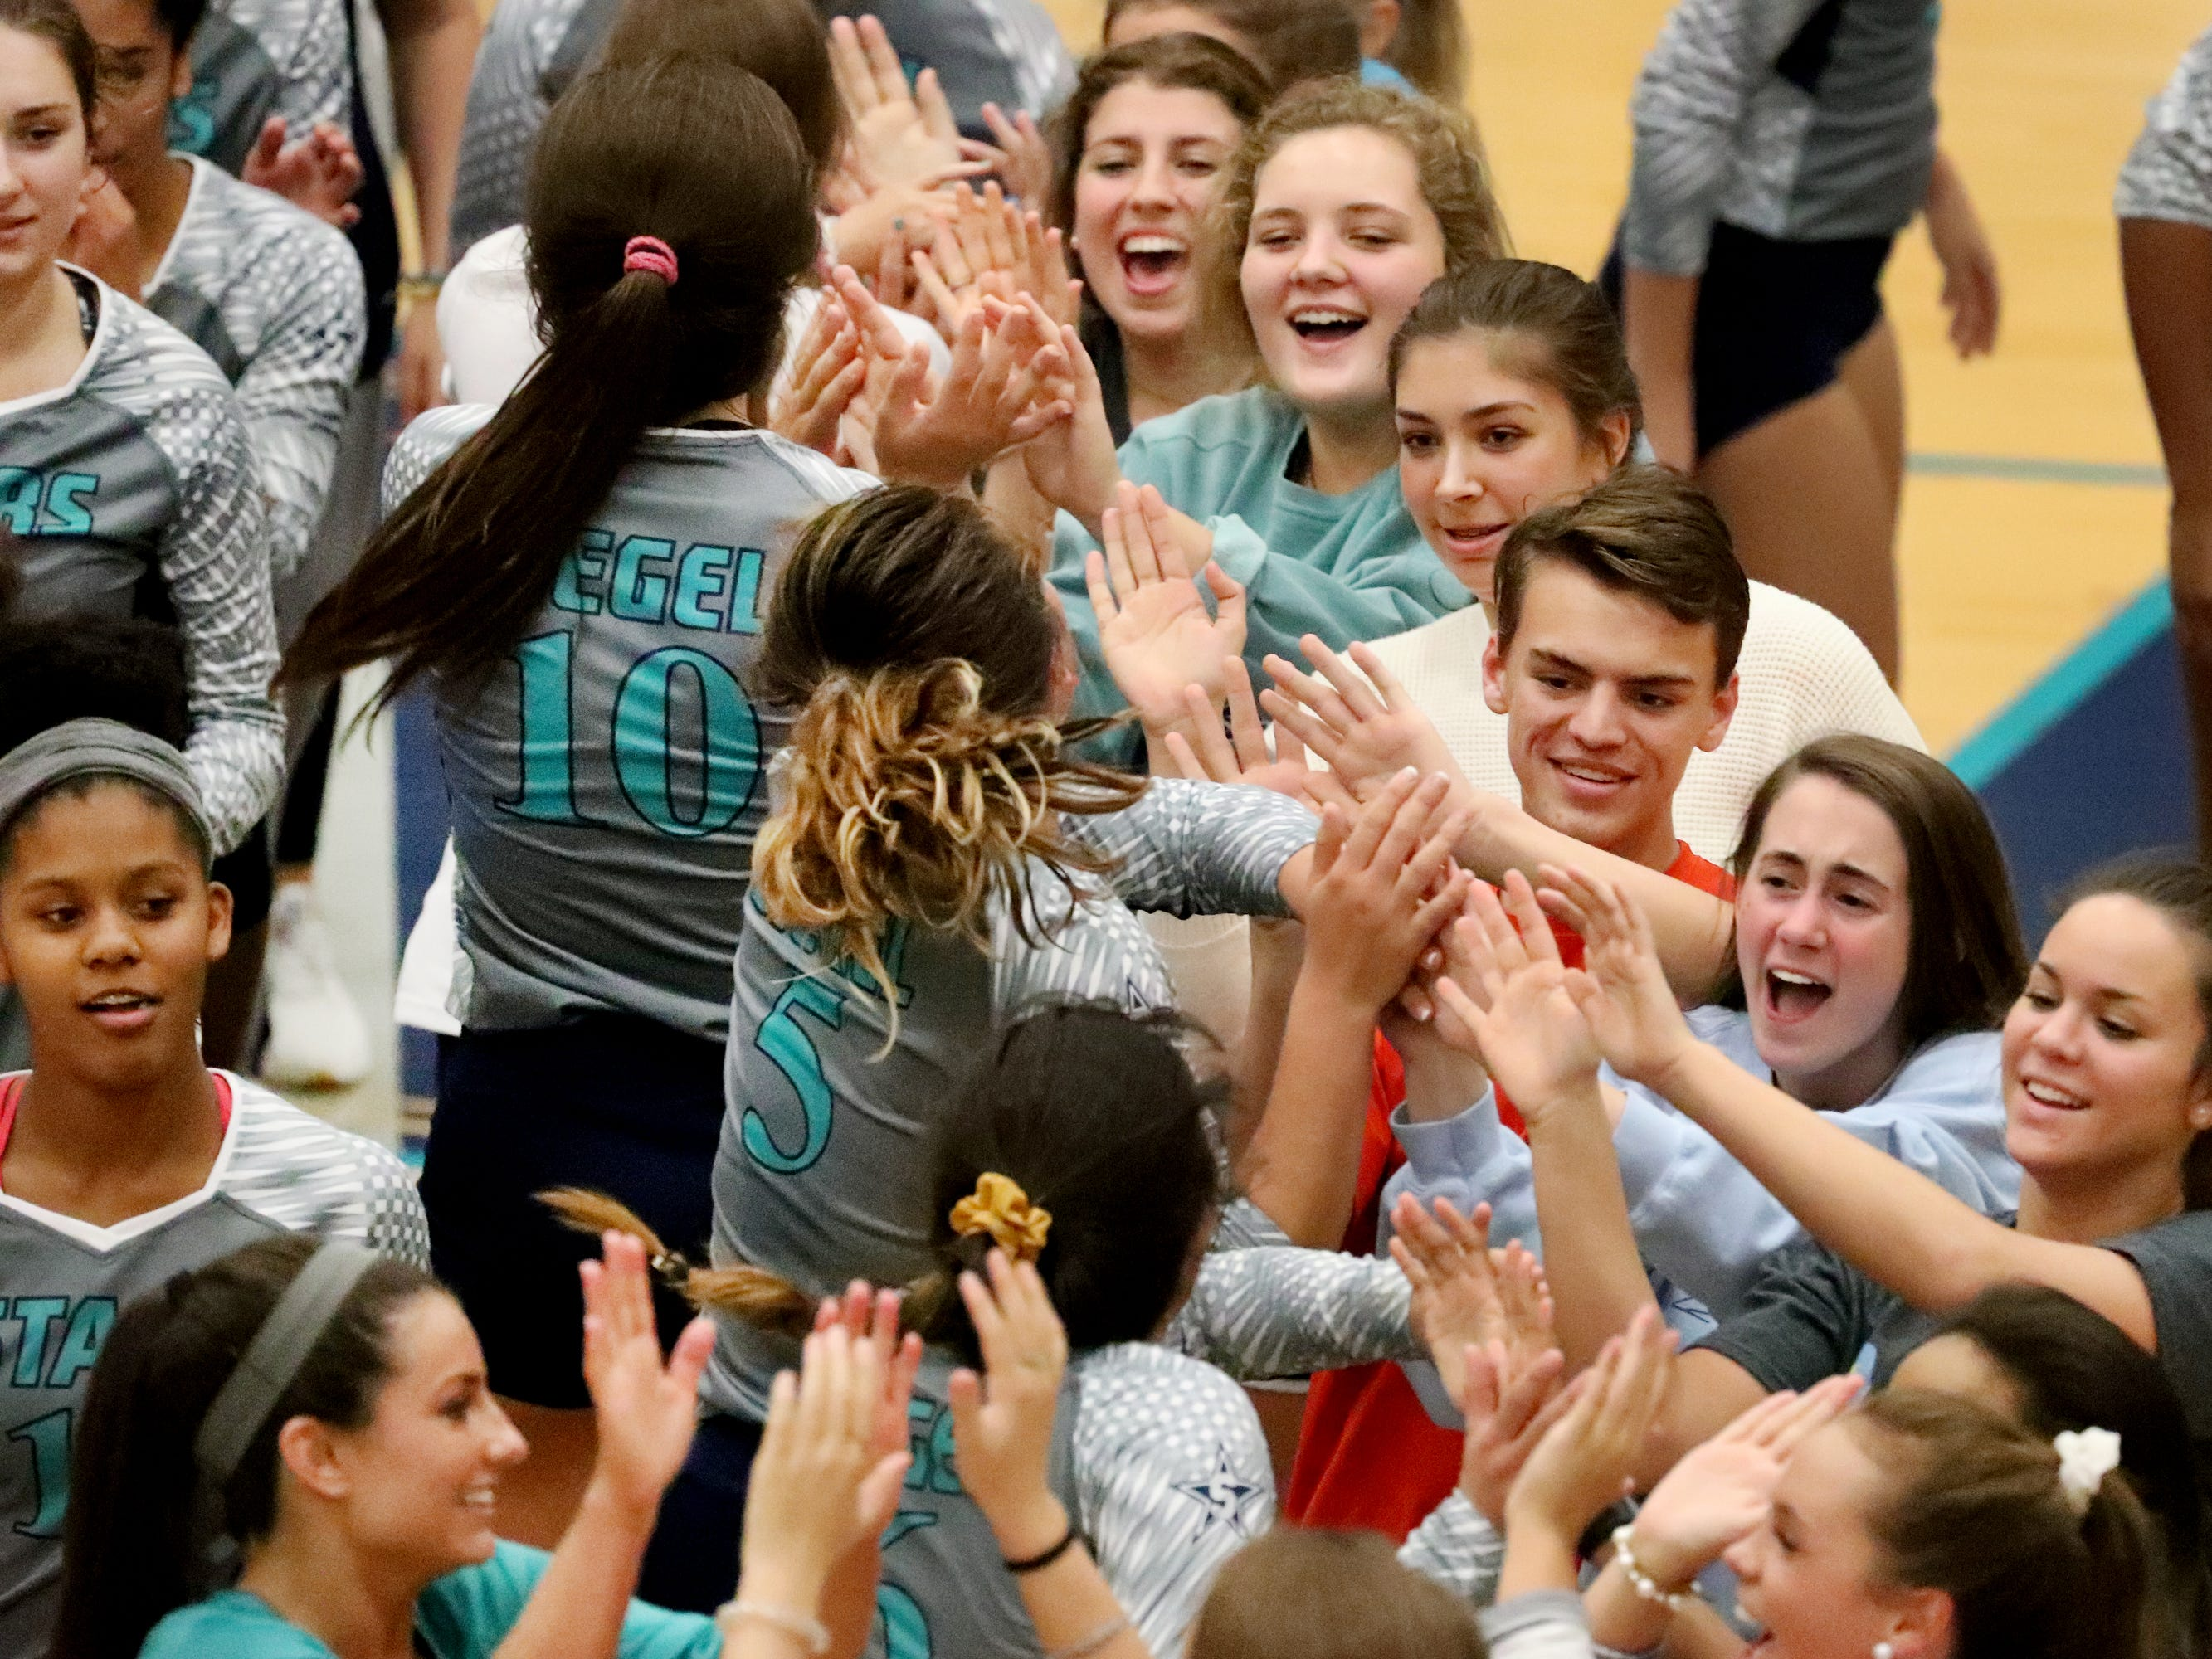 Siegel celebrates beating Cleveland in the Class AAA sectional Thursday, Oct. 11, 2018, to advance them to the State Championship tournament.